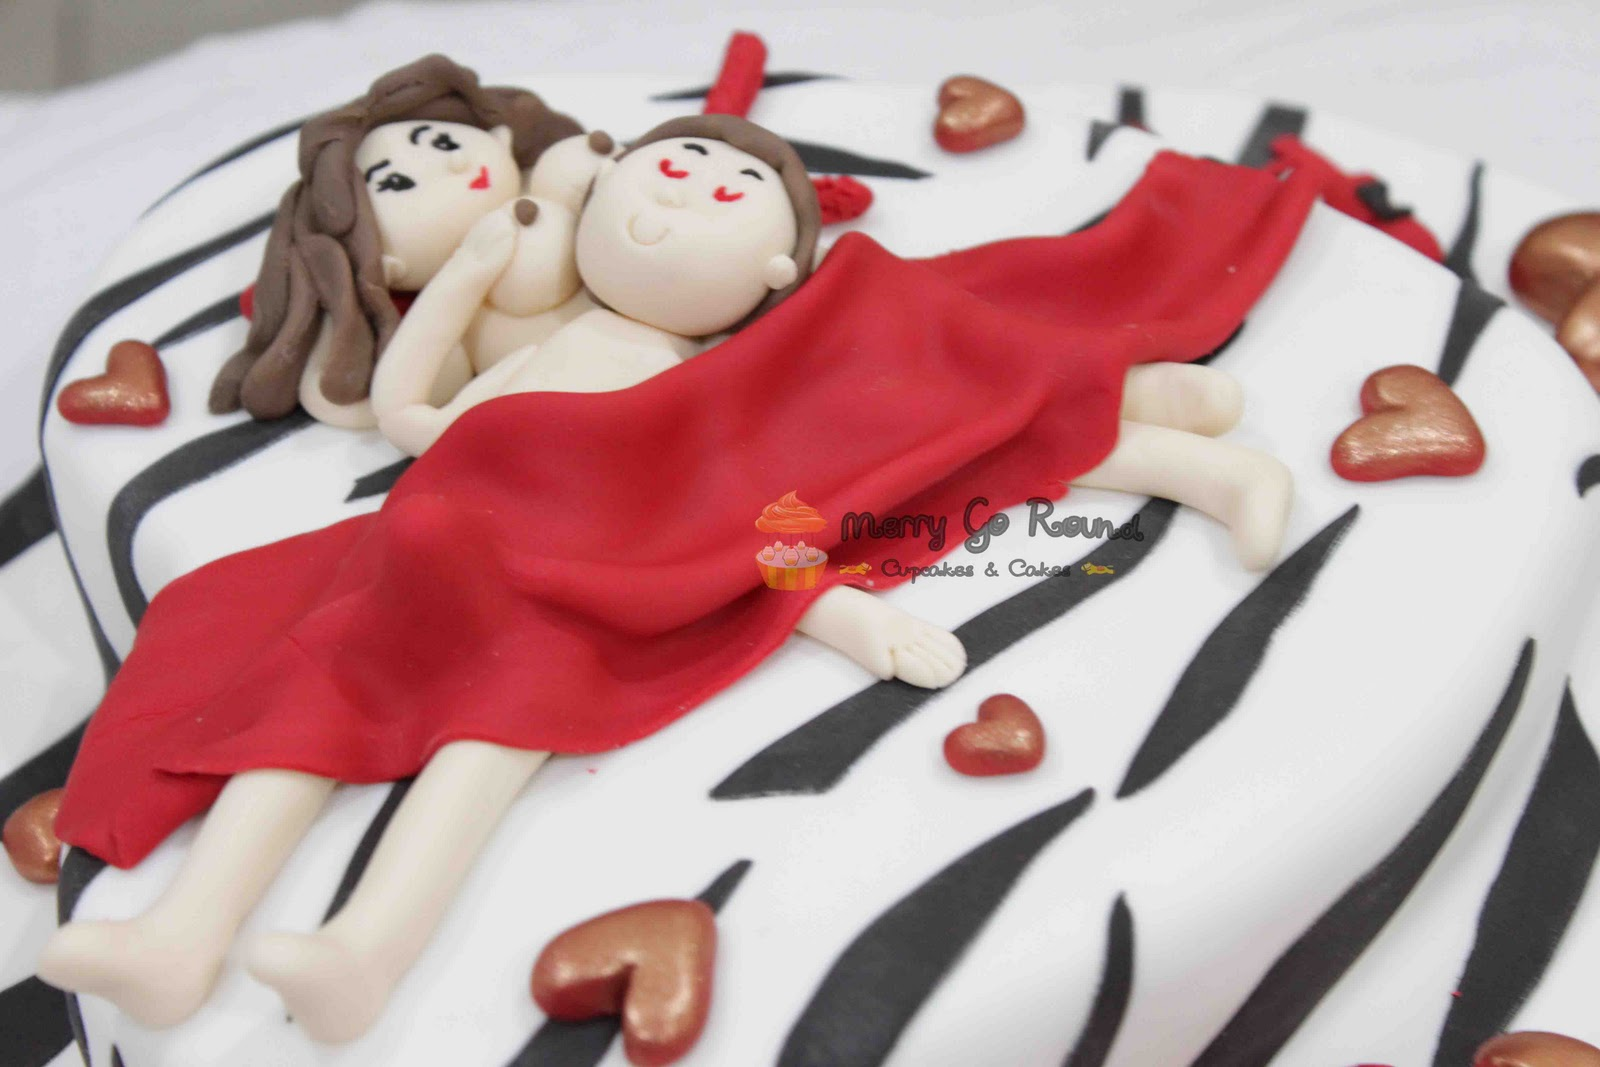 Naughty Bday Cake Images : Merry Go Round - Cupcakes & Cakes: Naughty Bed Cake for ...